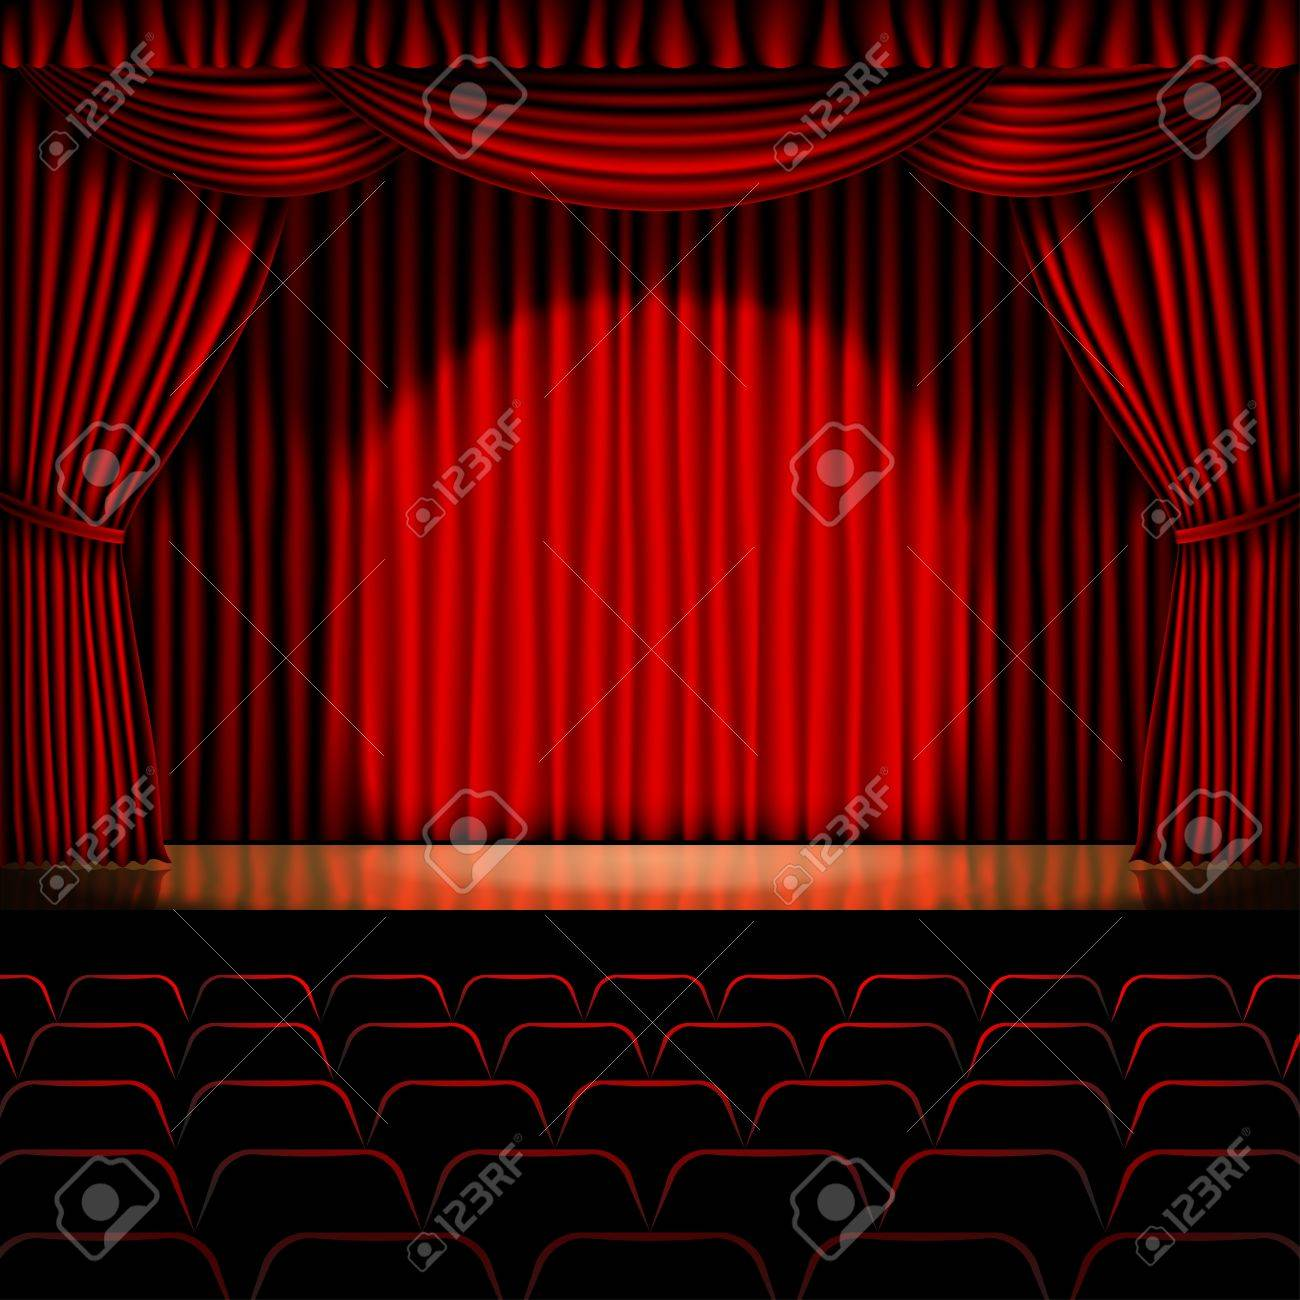 Stage With Red Curtain Background Stock Vector